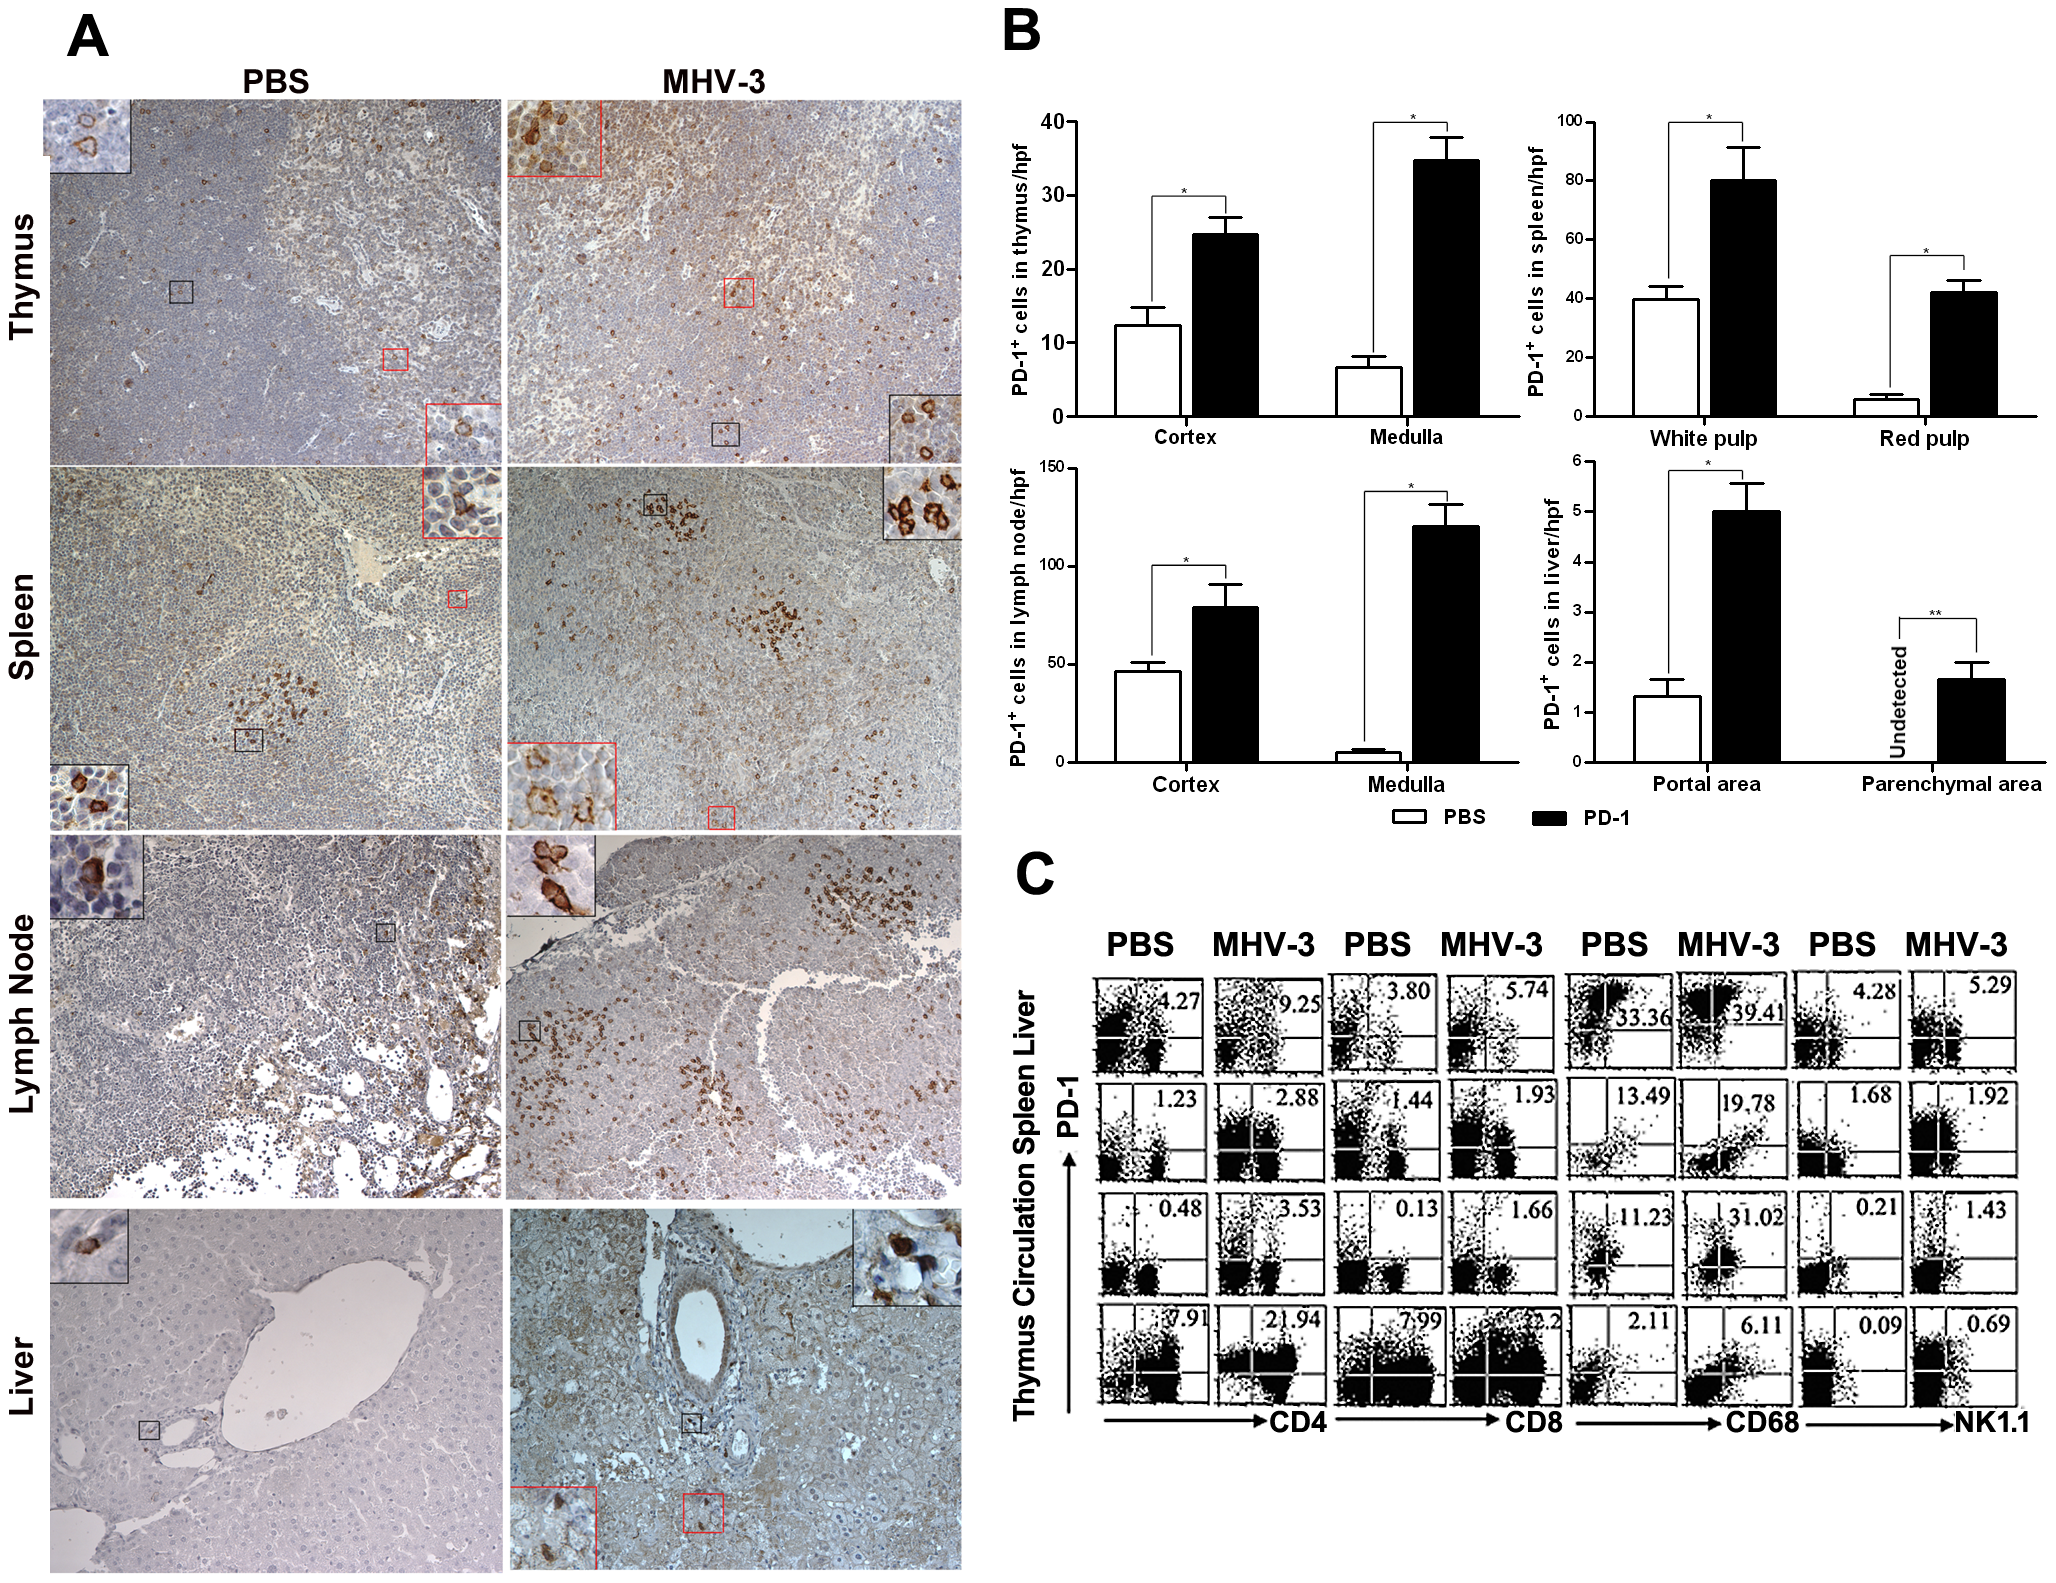 Enhanced expression of PD-1 on immune cells after 72 h of MHV-3 infection.